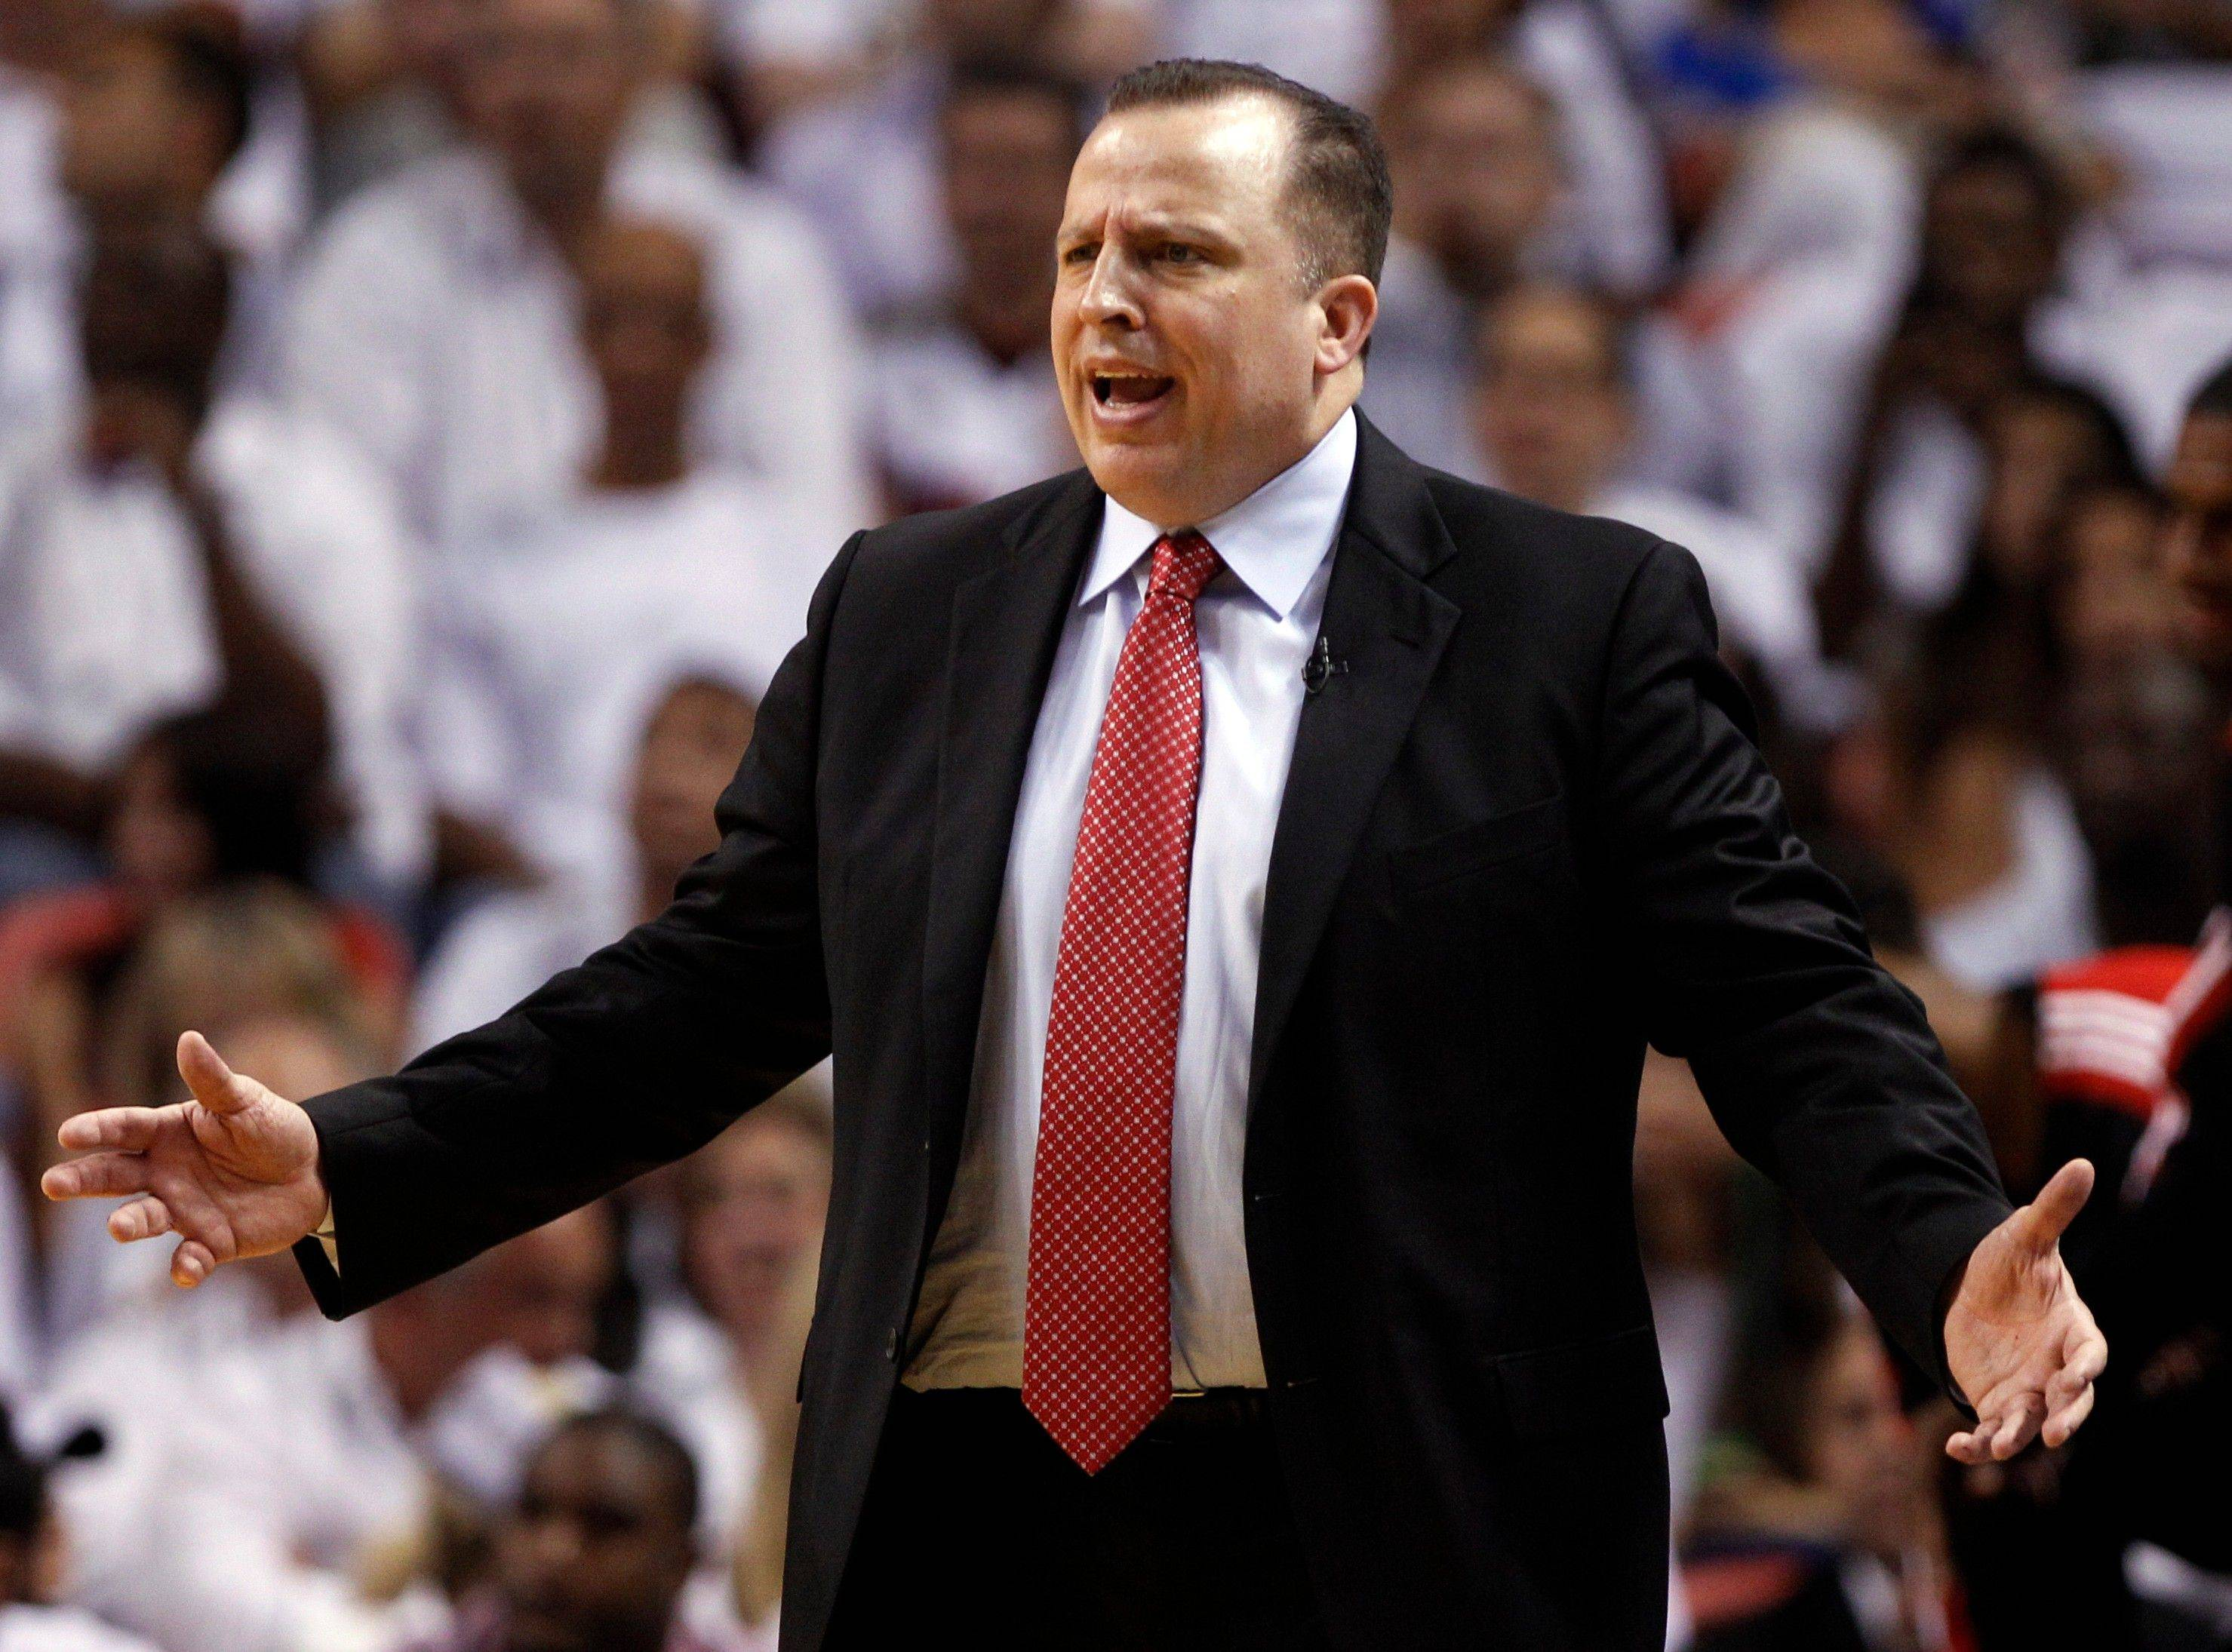 Chicago Bulls head coach Tom Thibodeau gestures to his team during the first half of Game 4 of the NBA Eastern Conference finals basketball series against the Miami Heat in Miami, Tuesday, May 24, 2011.